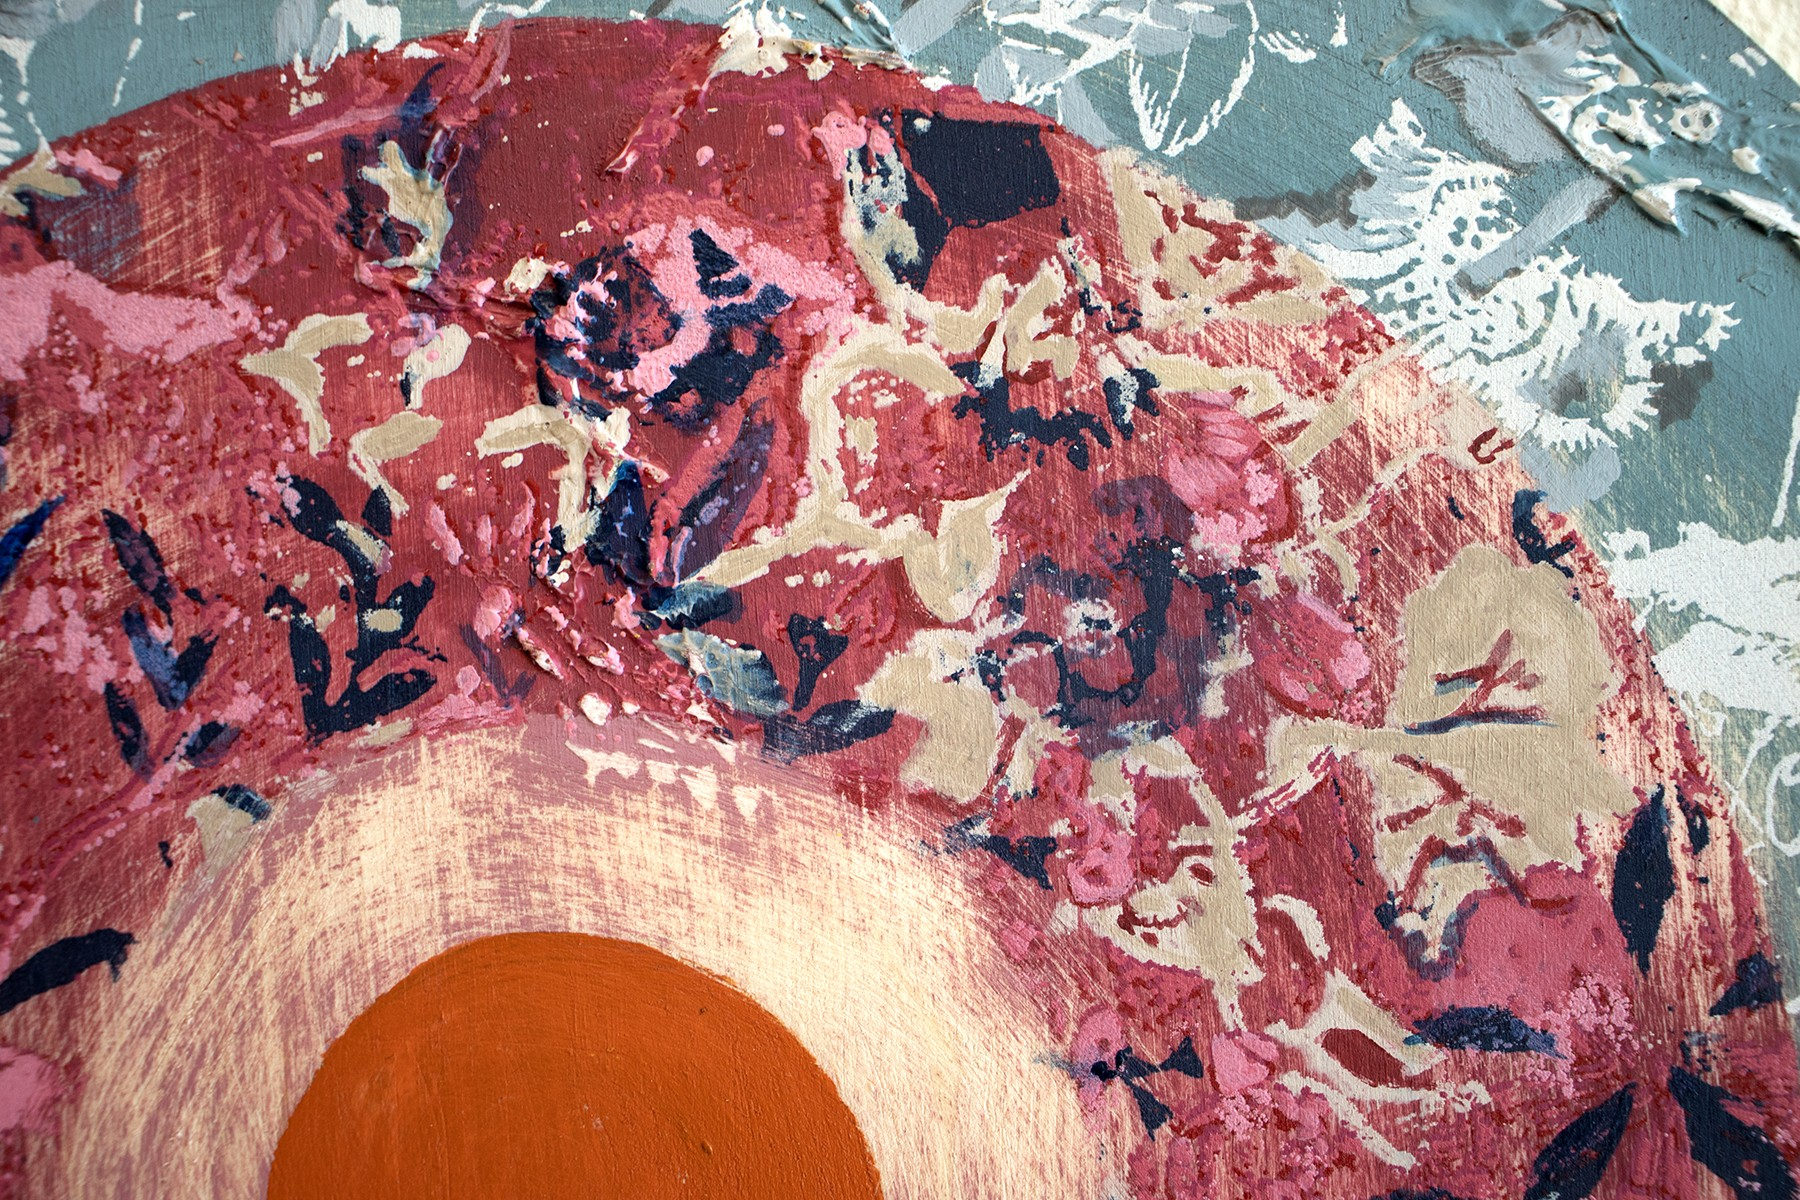 Calio Craze is a vibrant screenprint on wood separated into four different circles, each a different color. The piece has raised segments in the shape of birds that blend into the design. The imagery is a rough collage of different Chintz fabric, combinin